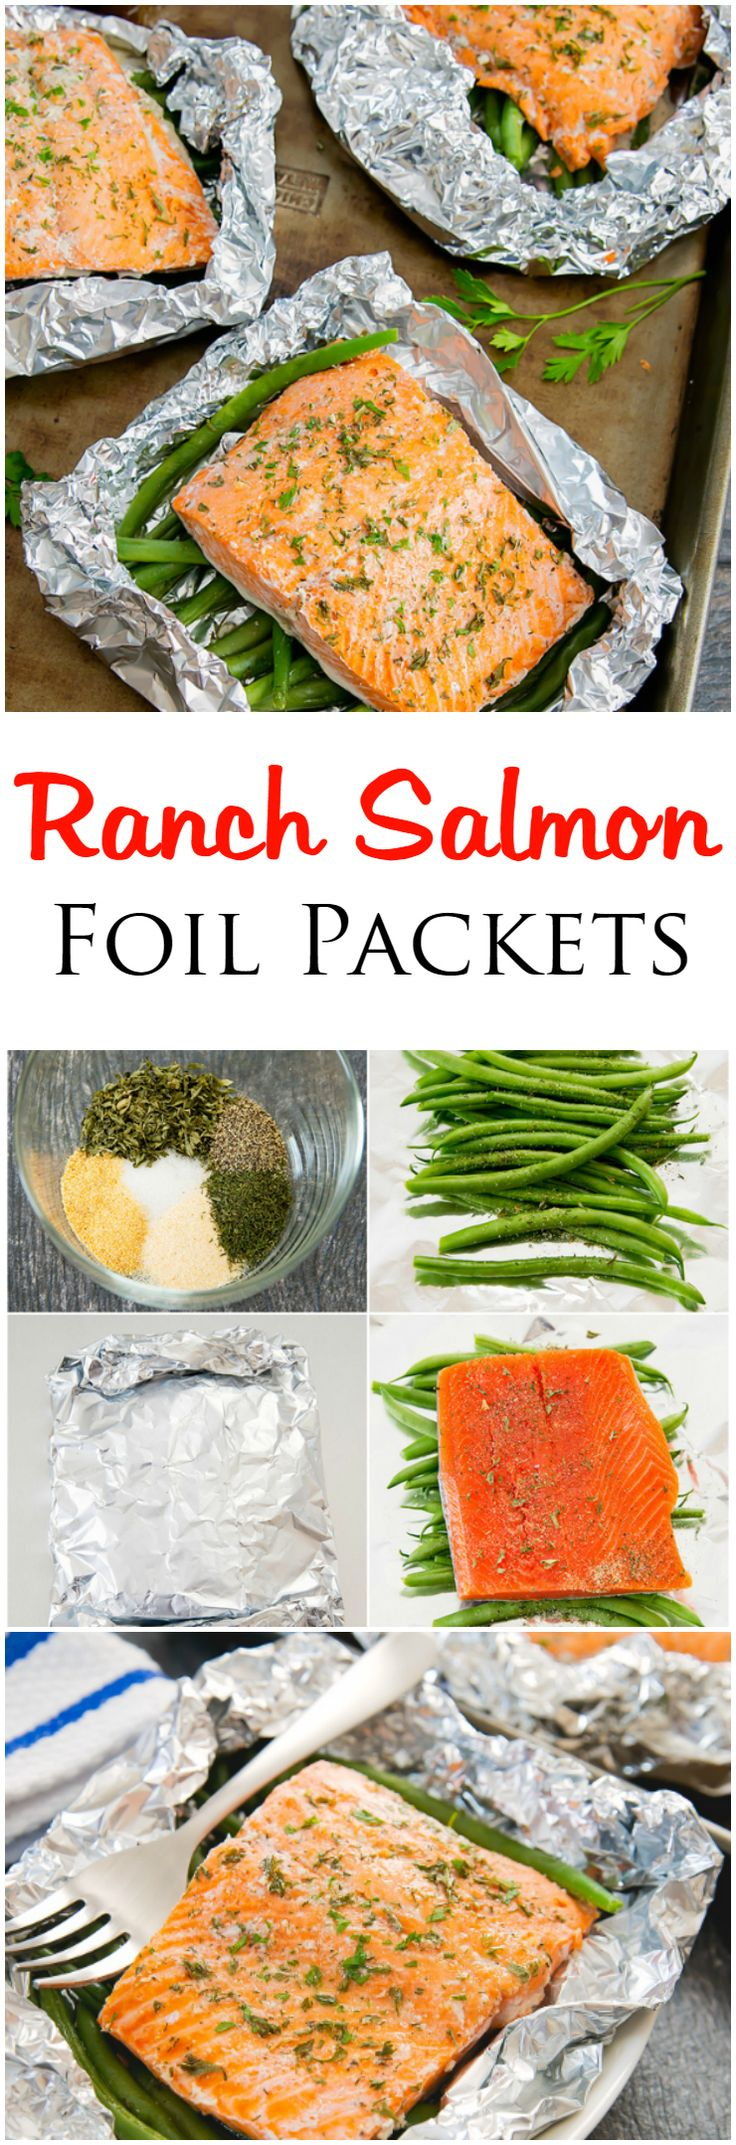 Ranch Salmon Foil Packets. Homemade ranch seasoning is sprinkled over fish and vegetables, for an easy meal with very little clean-up!